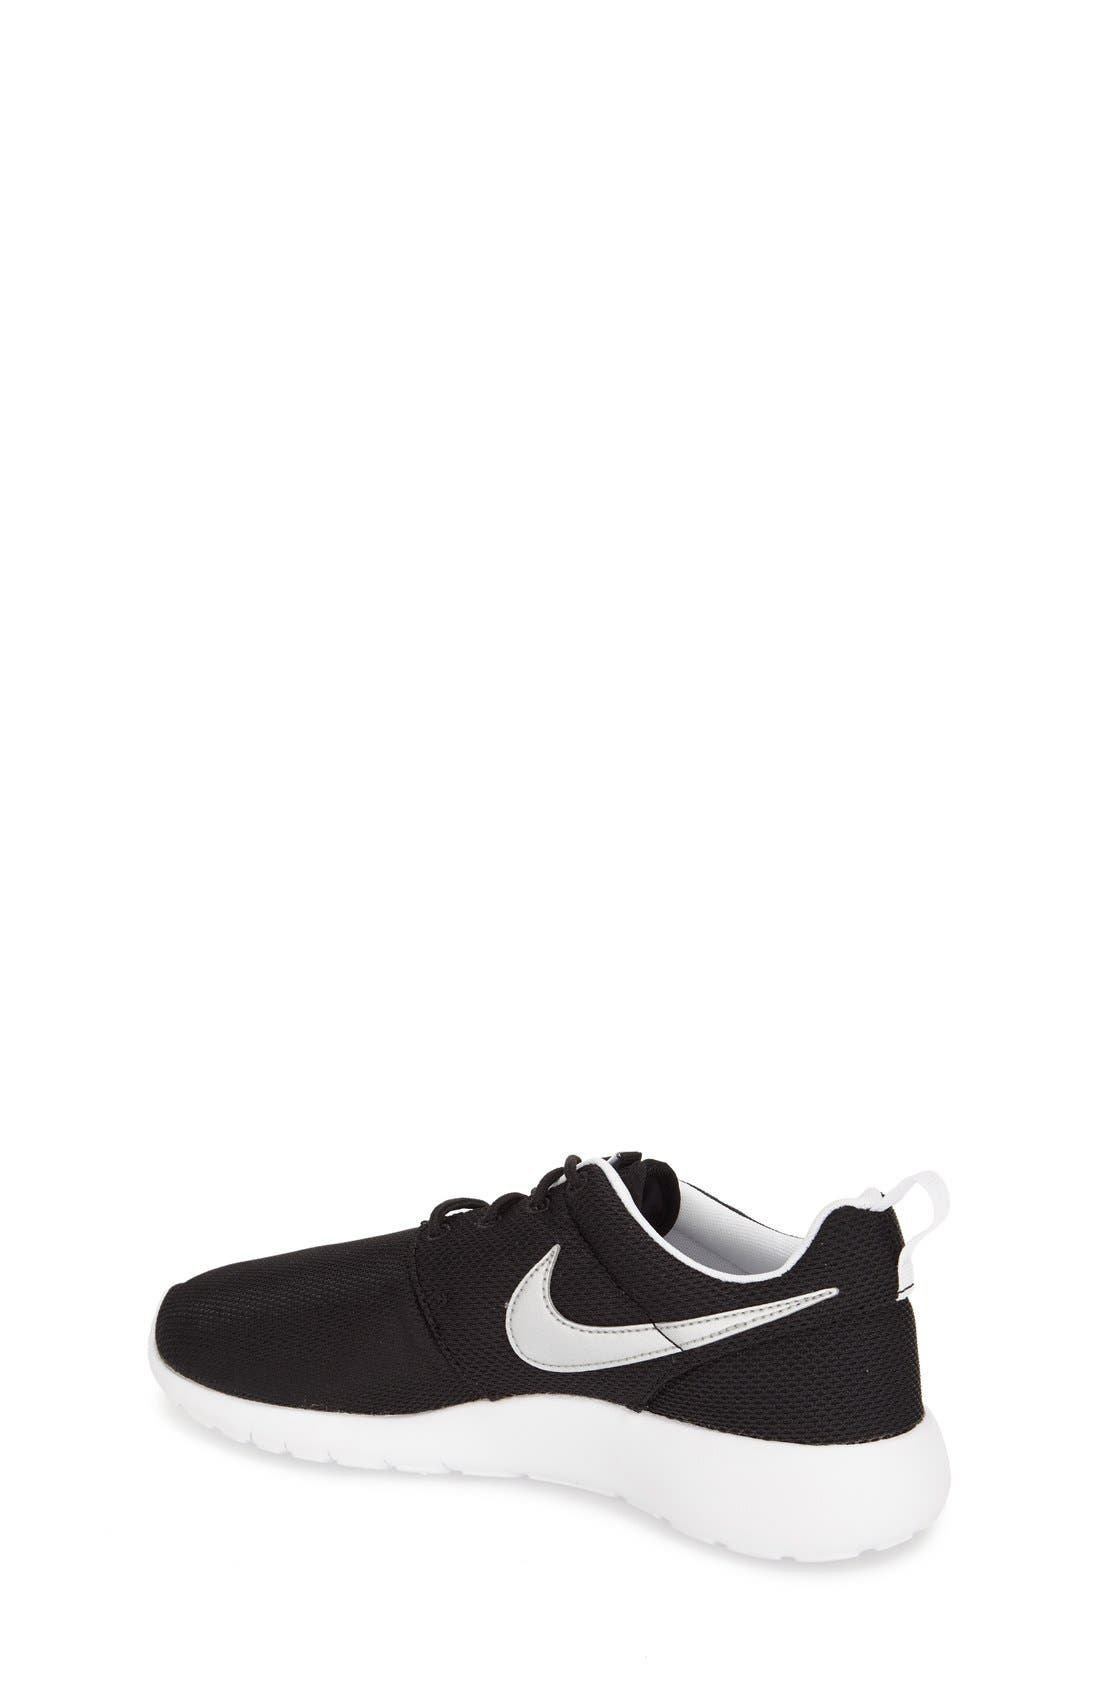 'Roshe Run' Sneaker,                             Alternate thumbnail 108, color,